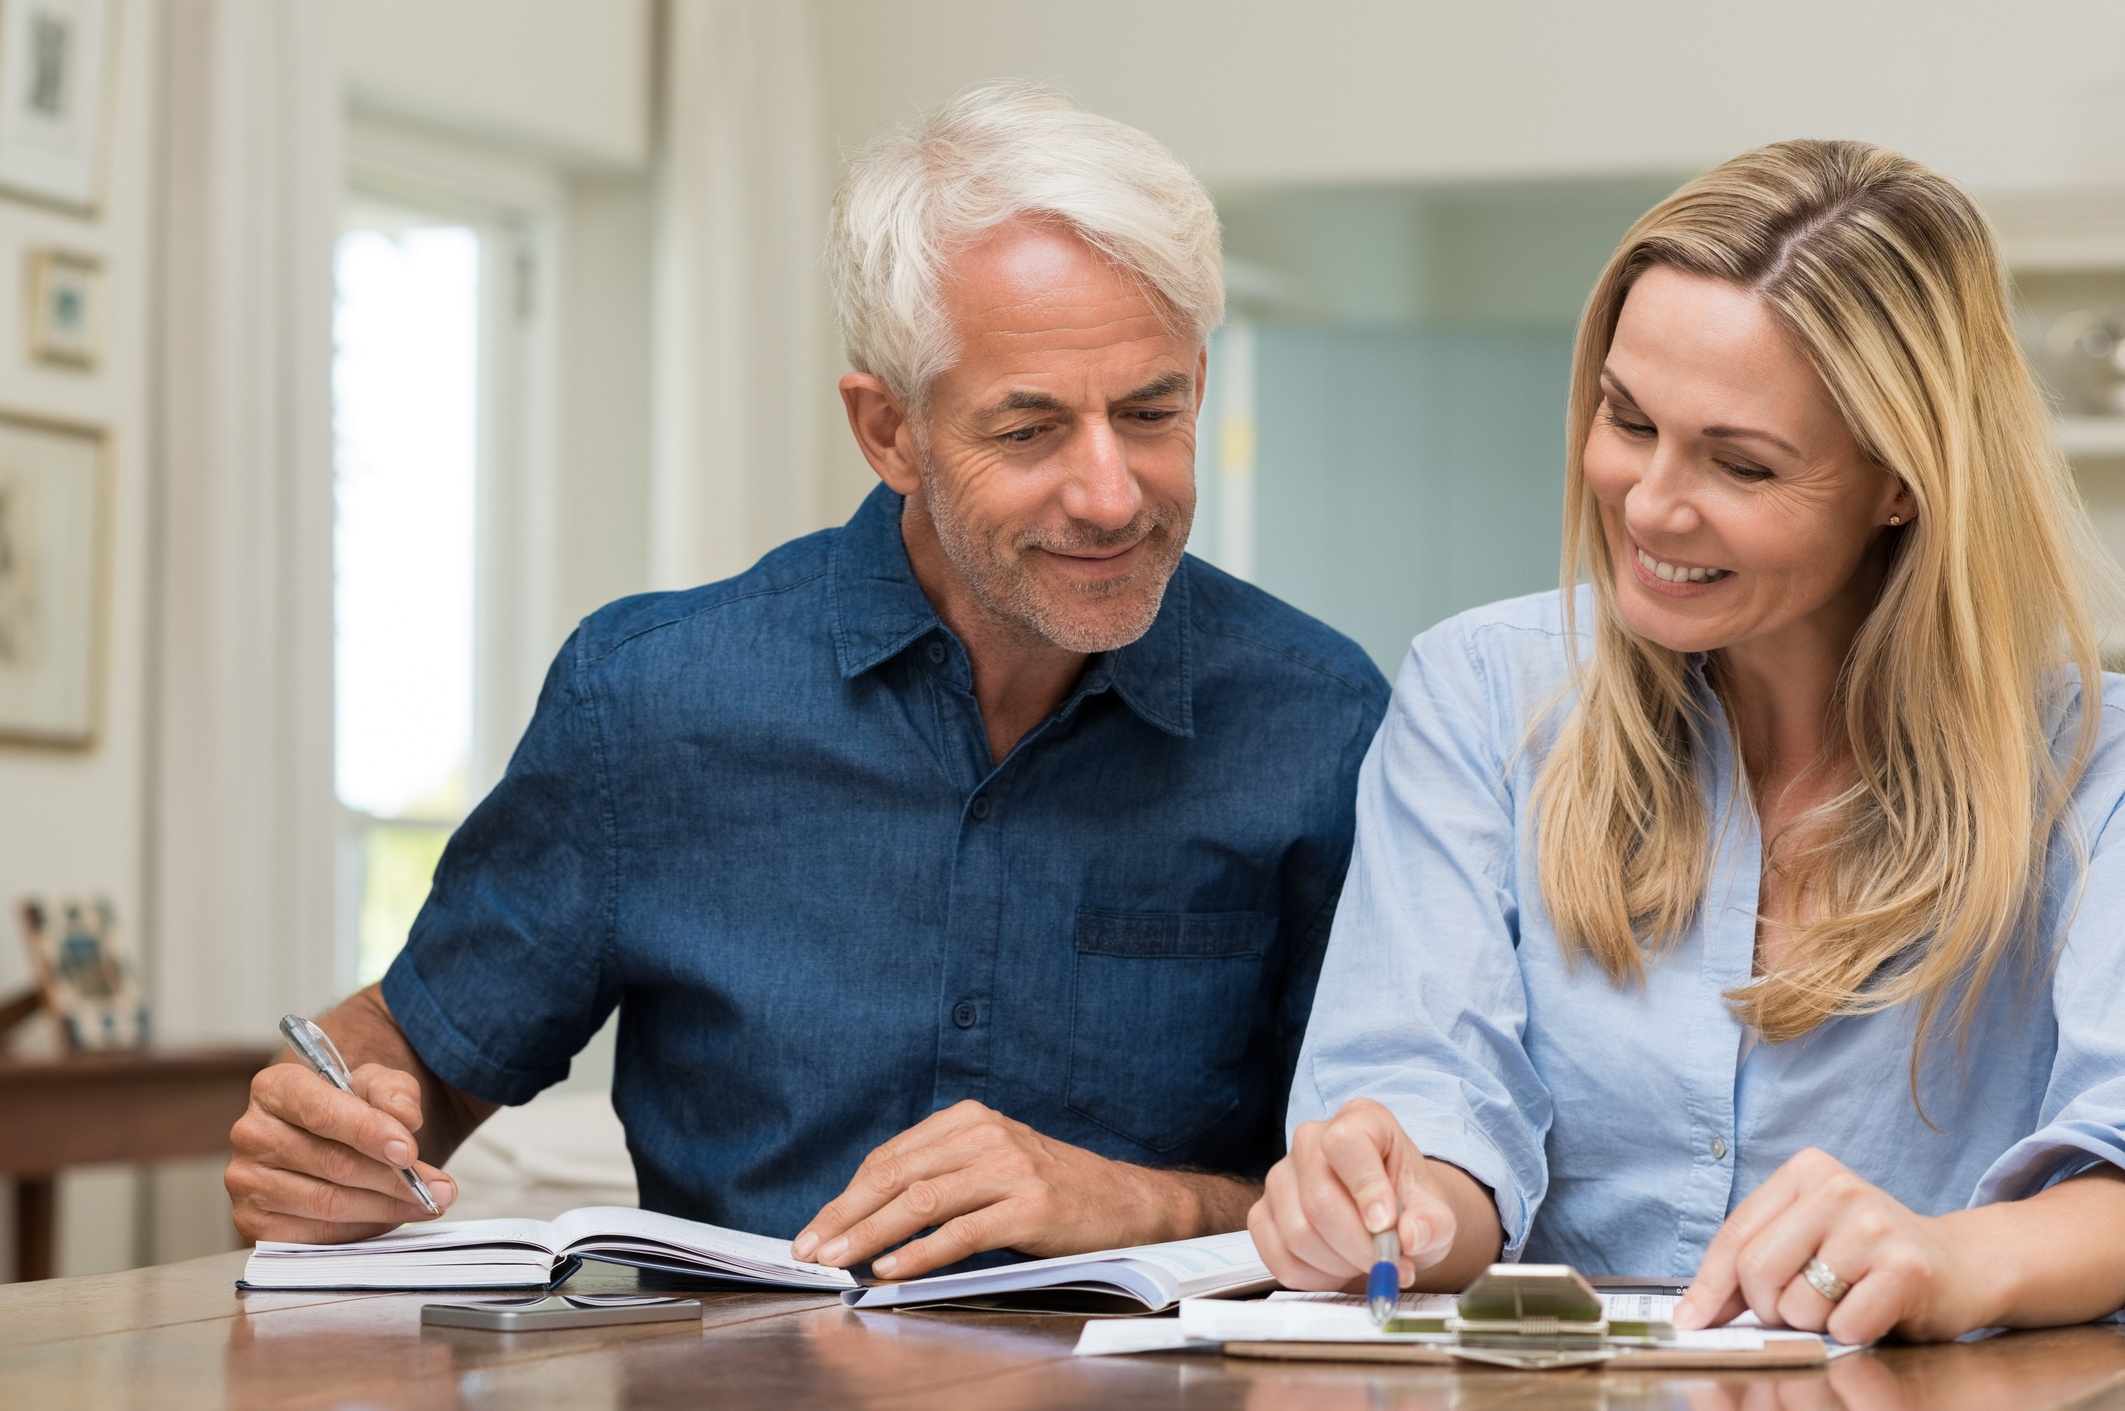 DIY Financial Planning vs. Working with an Advisor